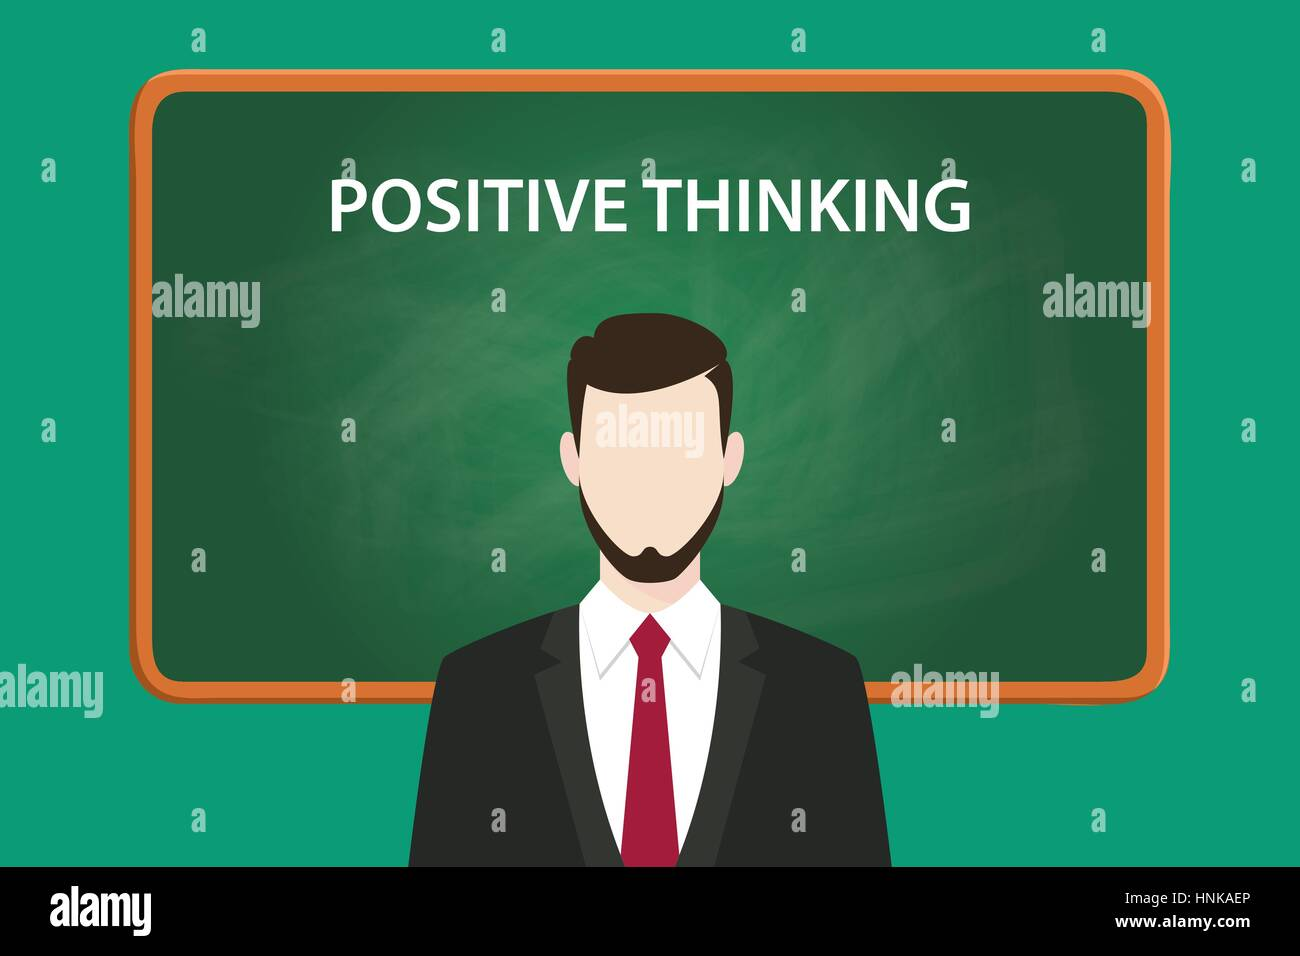 positive thinking illustration with a bearded man wearing black suit in front of green chalk board and white text - Stock Vector